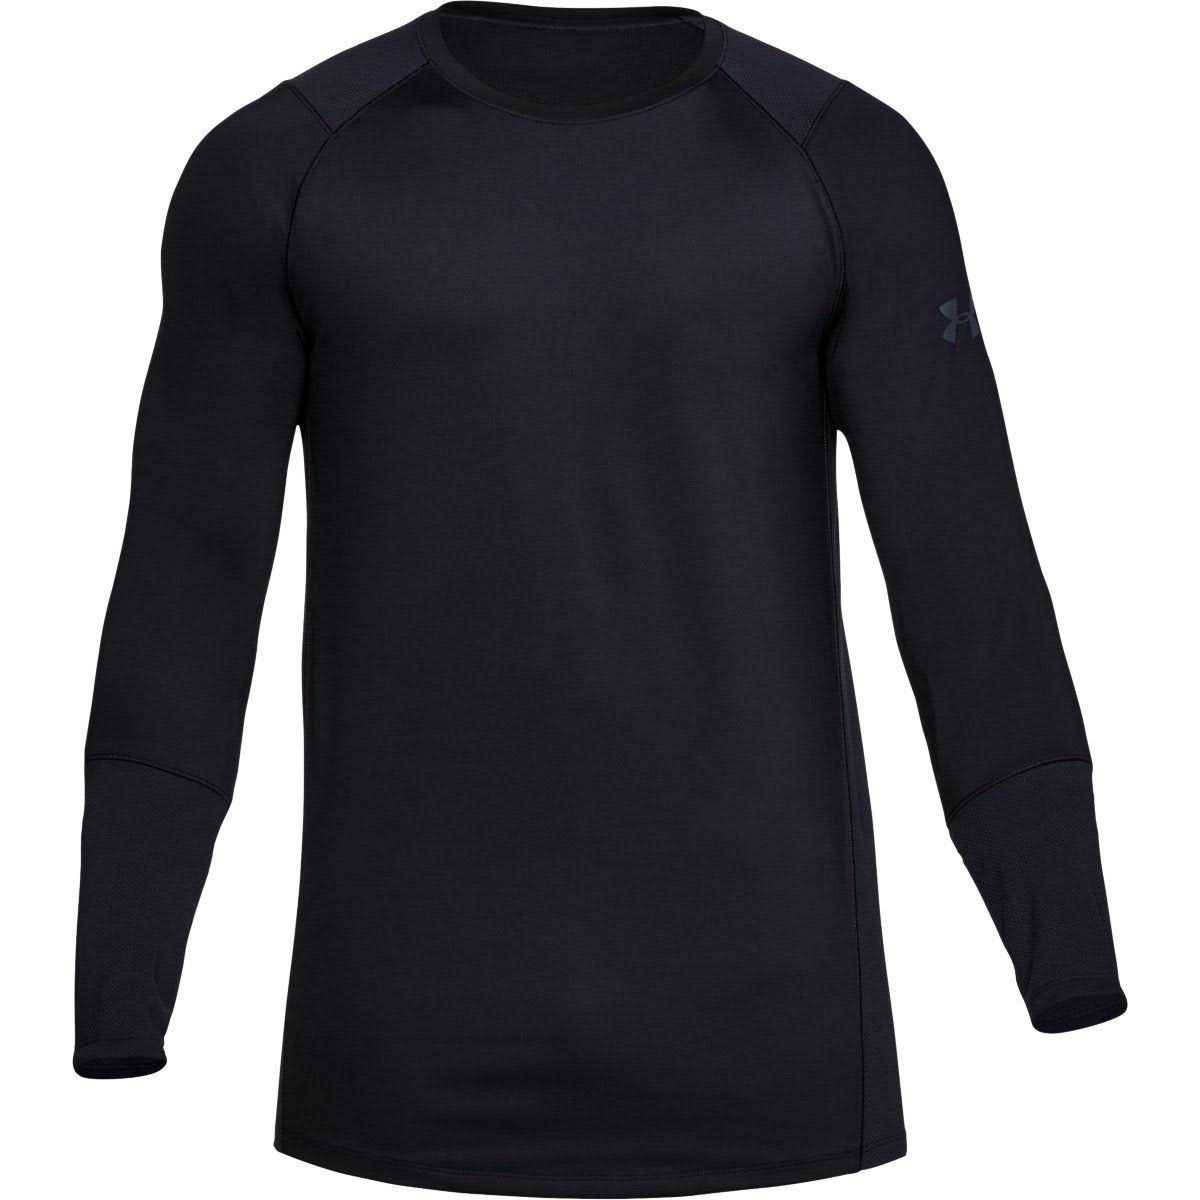 Ls 1306431 hombre 001 Armour Top Under M Mk1 Black XSTqWEw